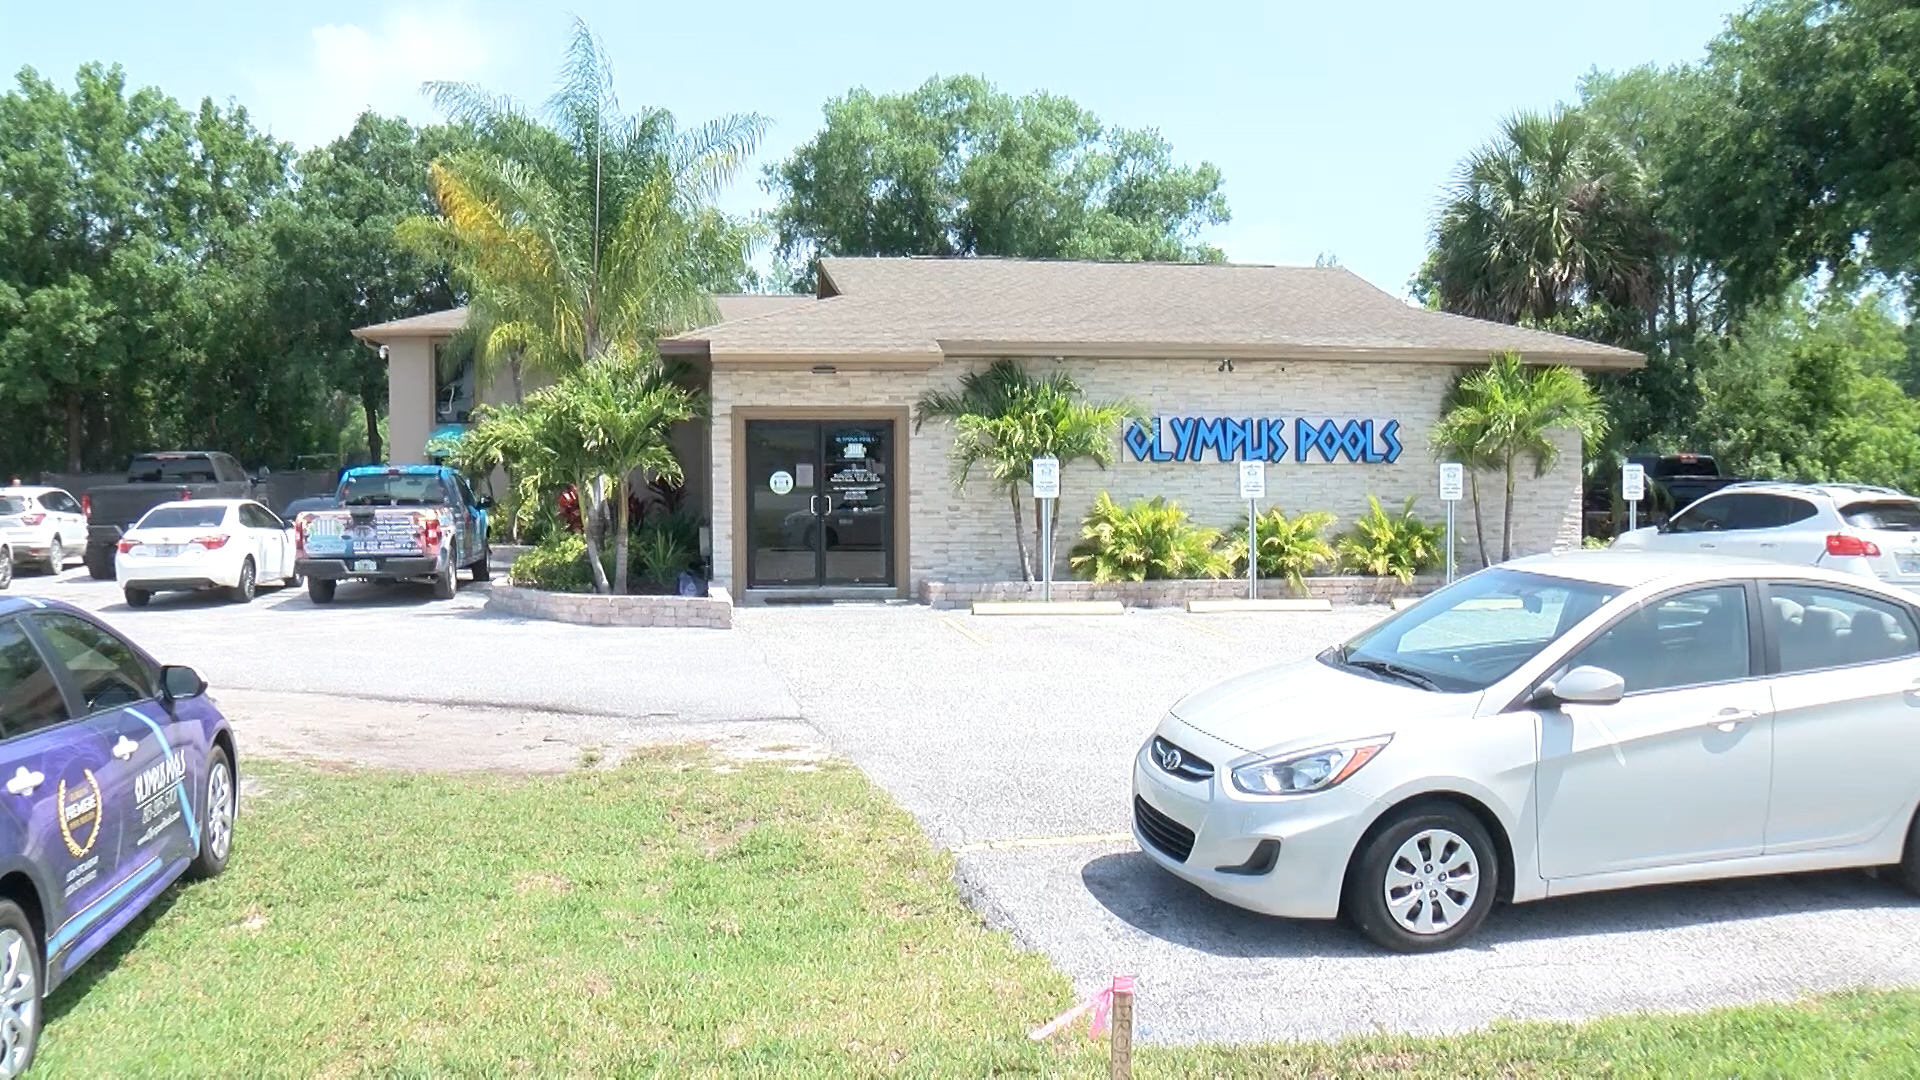 Olympus Pools is out of Business - Tampa florida pool builder implodes